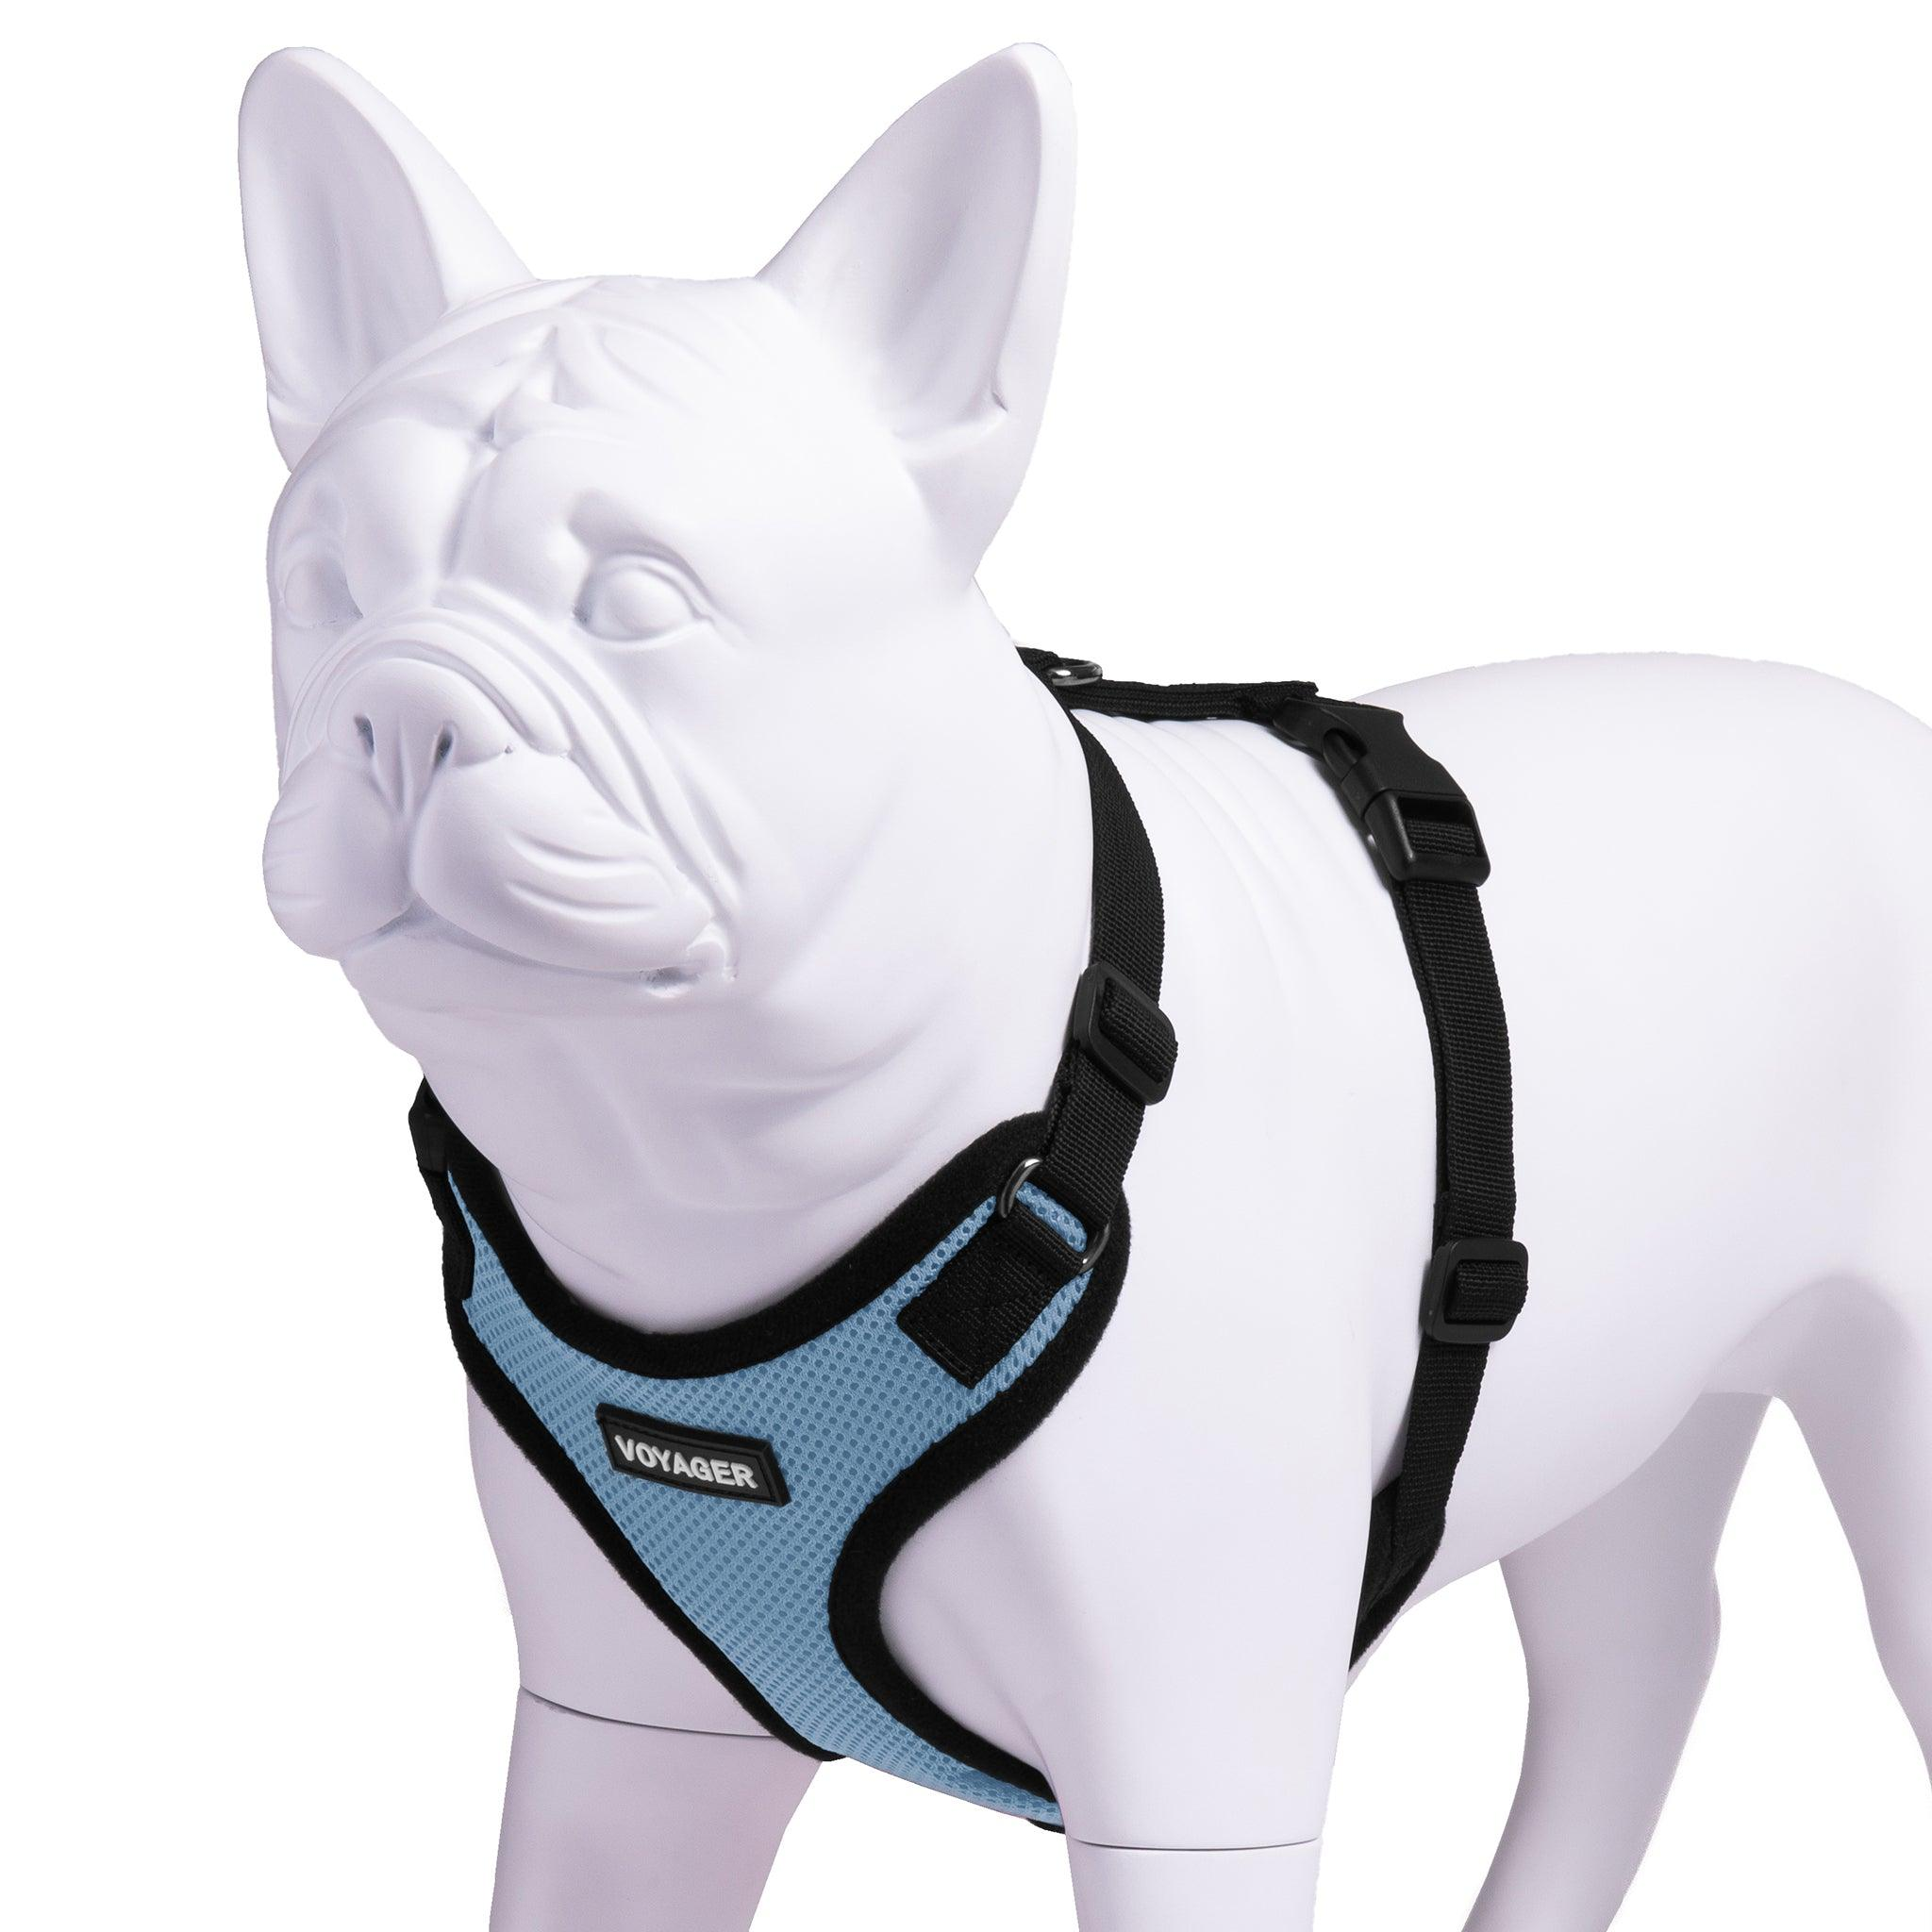 VOYAGER Step-In Lock Dog Harness in Baby Blue with Black Trim and Webbing - Expanded